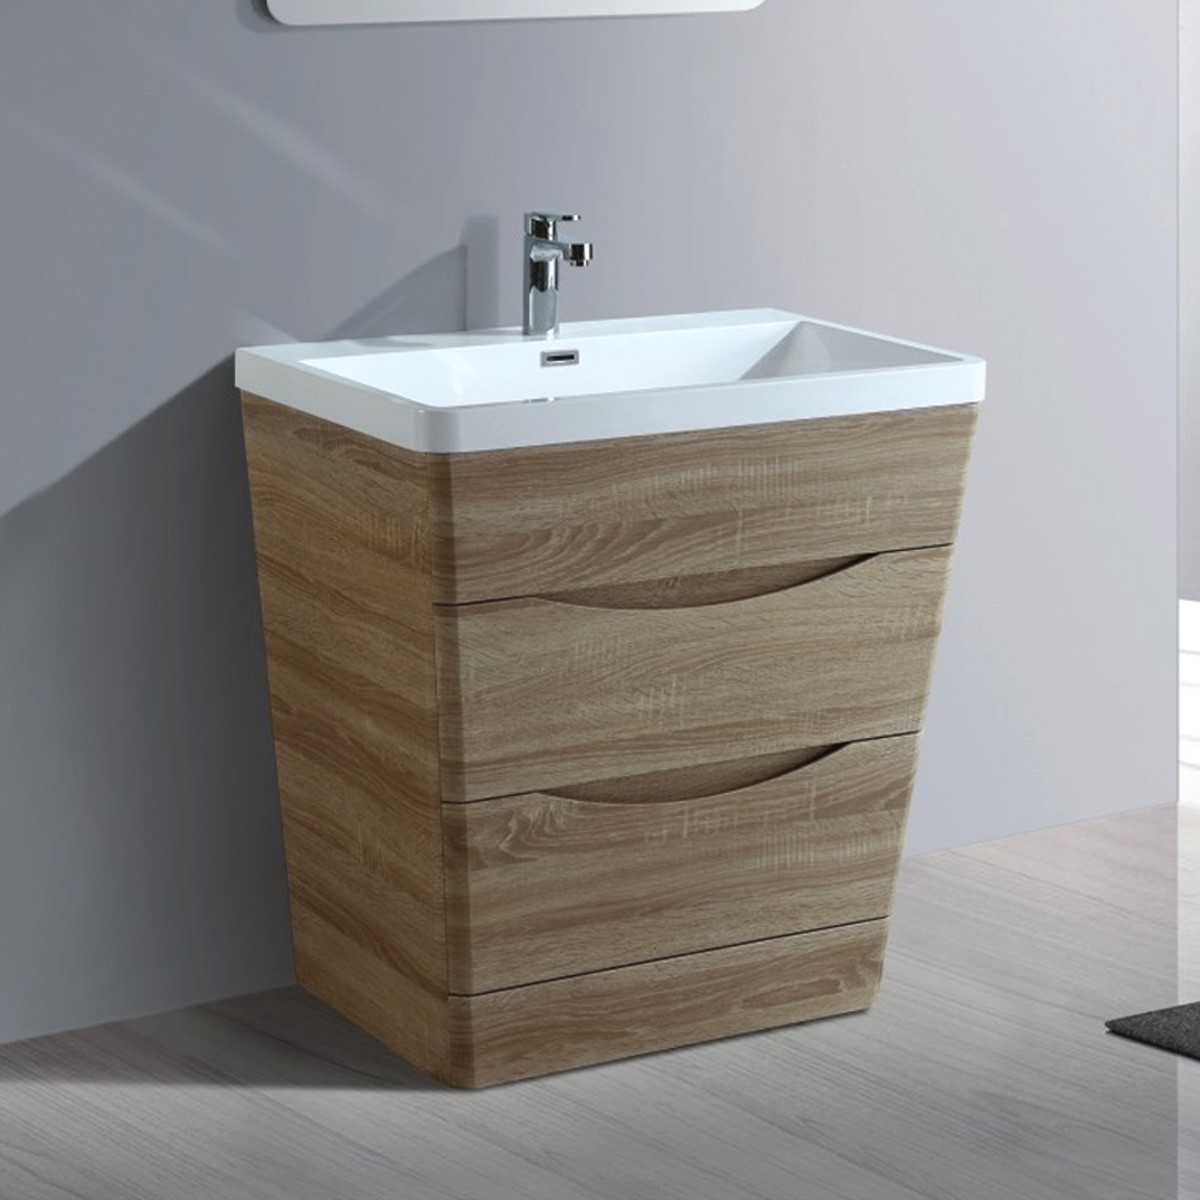 32 In. Bathroom Vanity with Basin (MY8002-V)